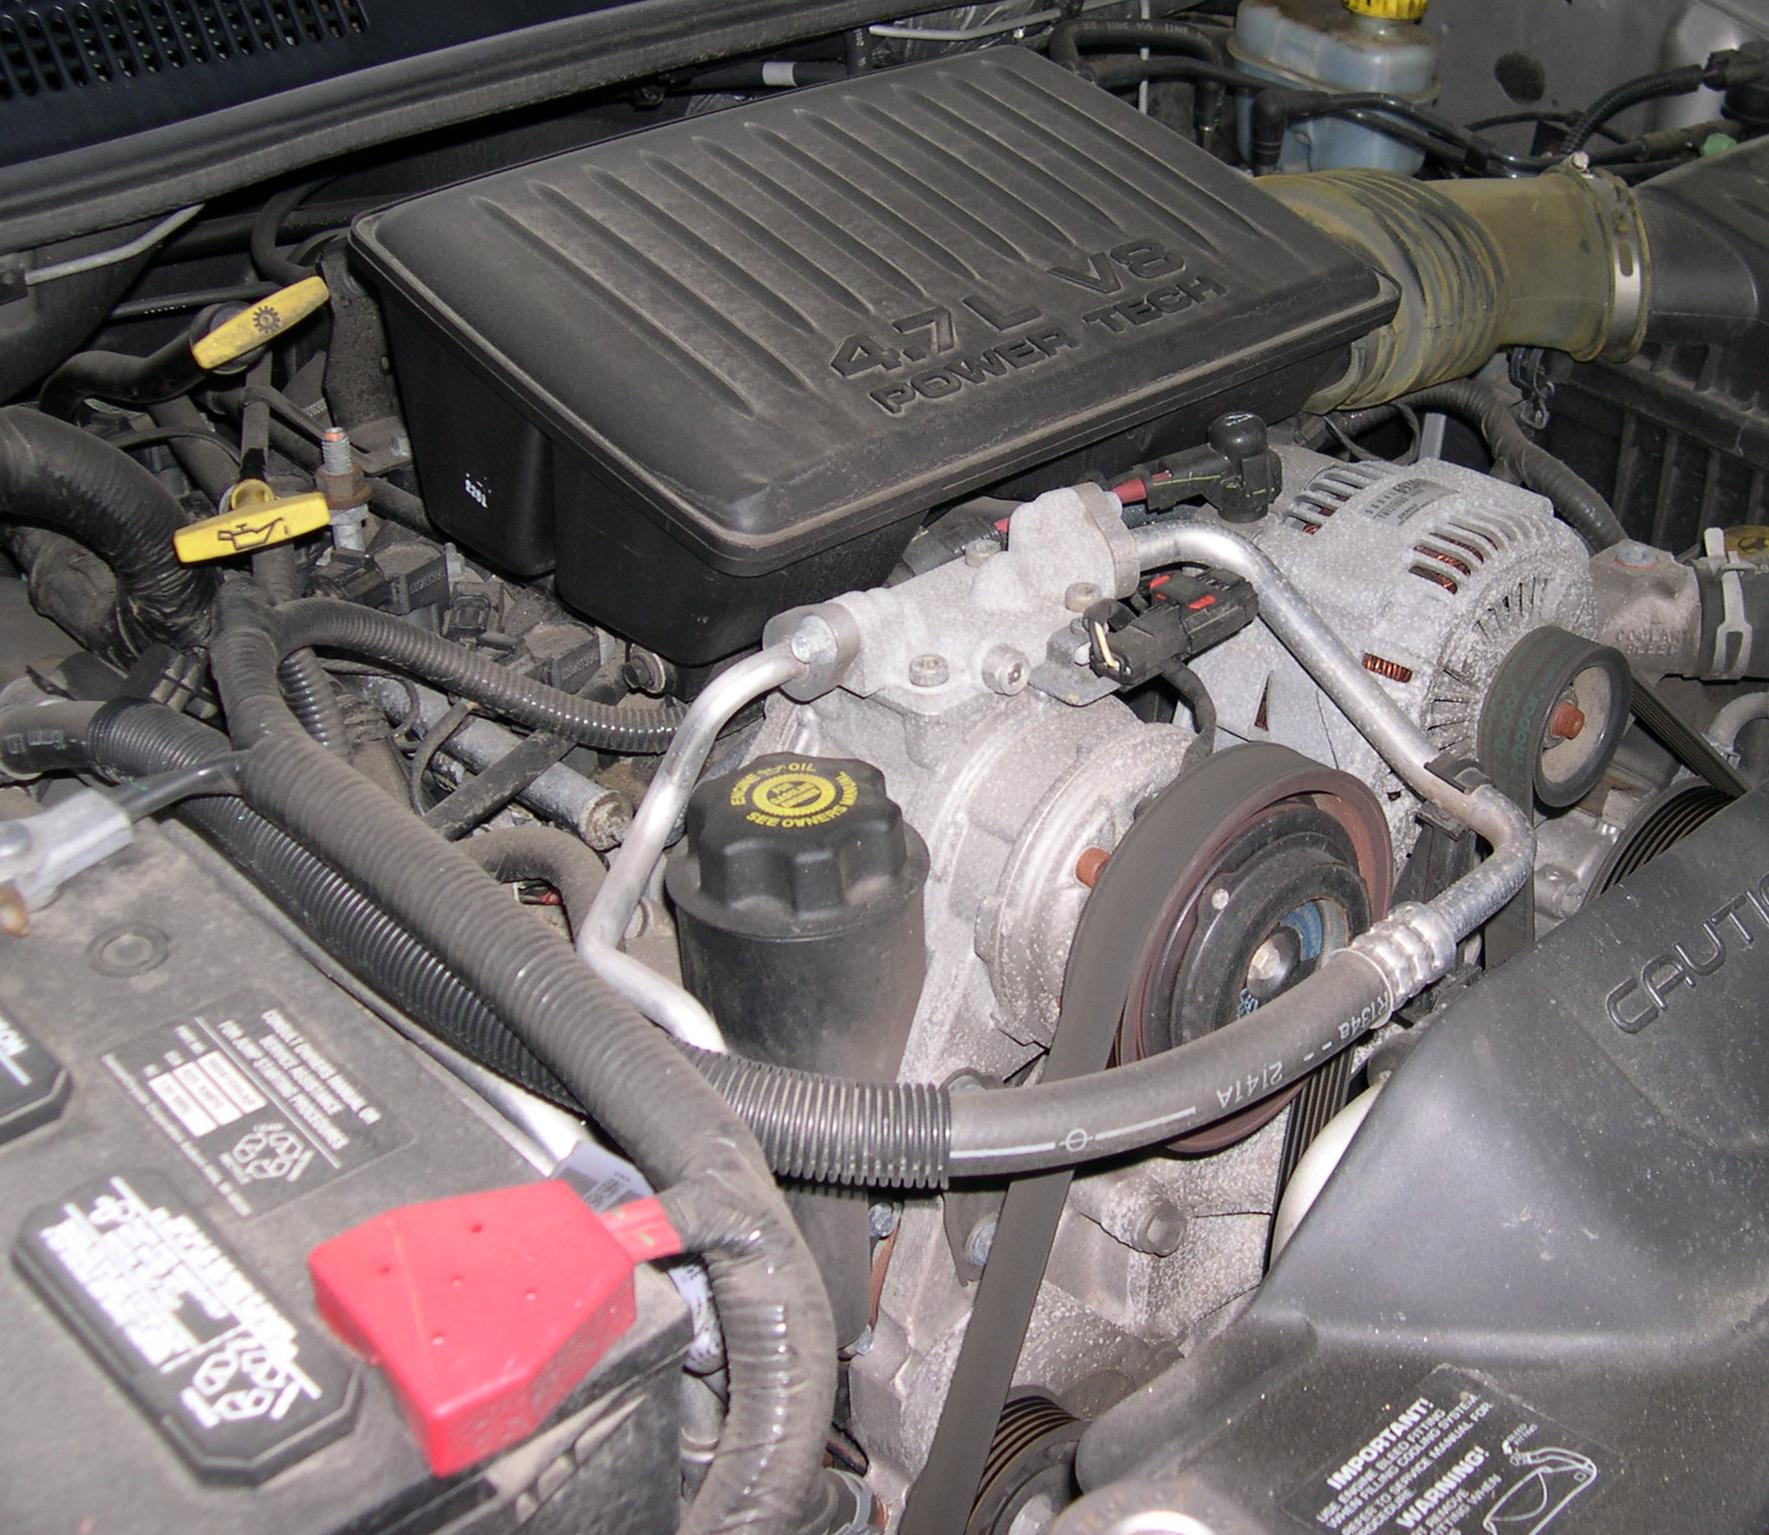 Chrysler PowerTech engine - Wikipedia on 02 dodge ram 1500 dash removal, 06 dodge ram wiring diagram, 03 dodge ram wiring diagram, 02 dodge ram 2500 wiring diagram, 93 buick century wiring diagram,